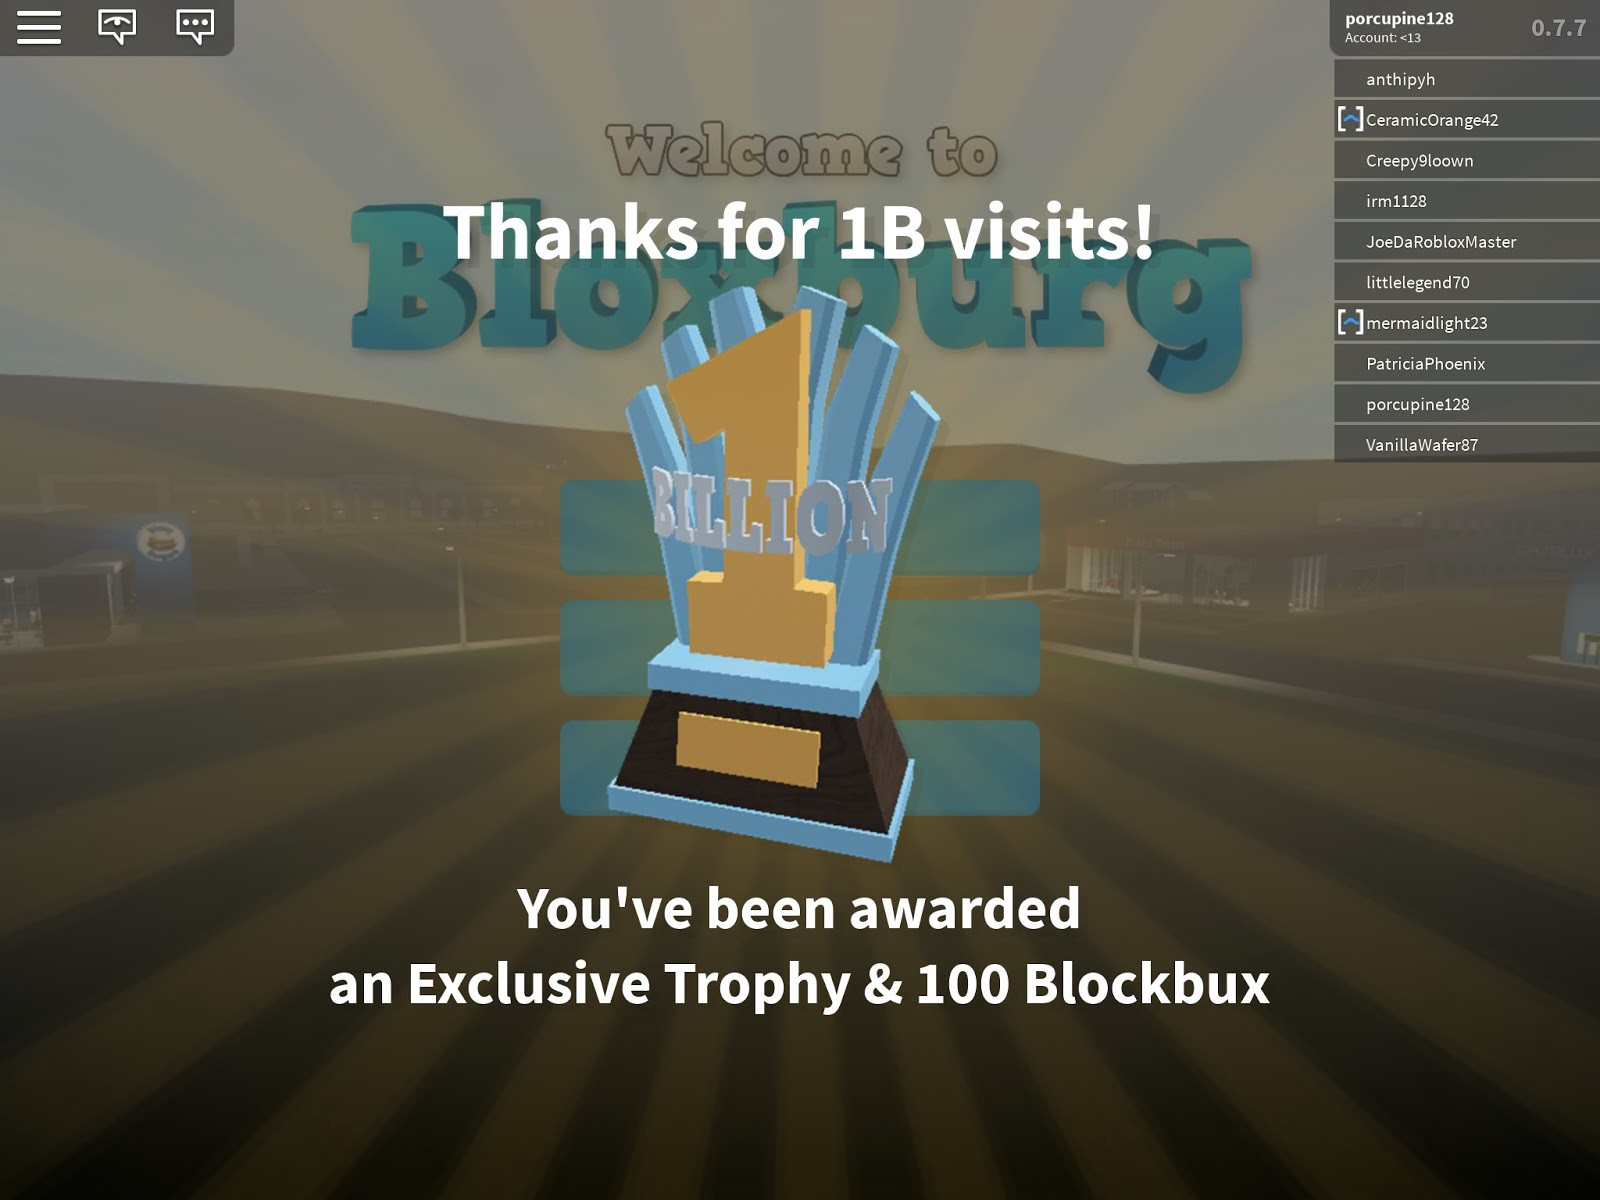 Bloxburg The Commonly Known Game In Roblox Has Gotten Over 1